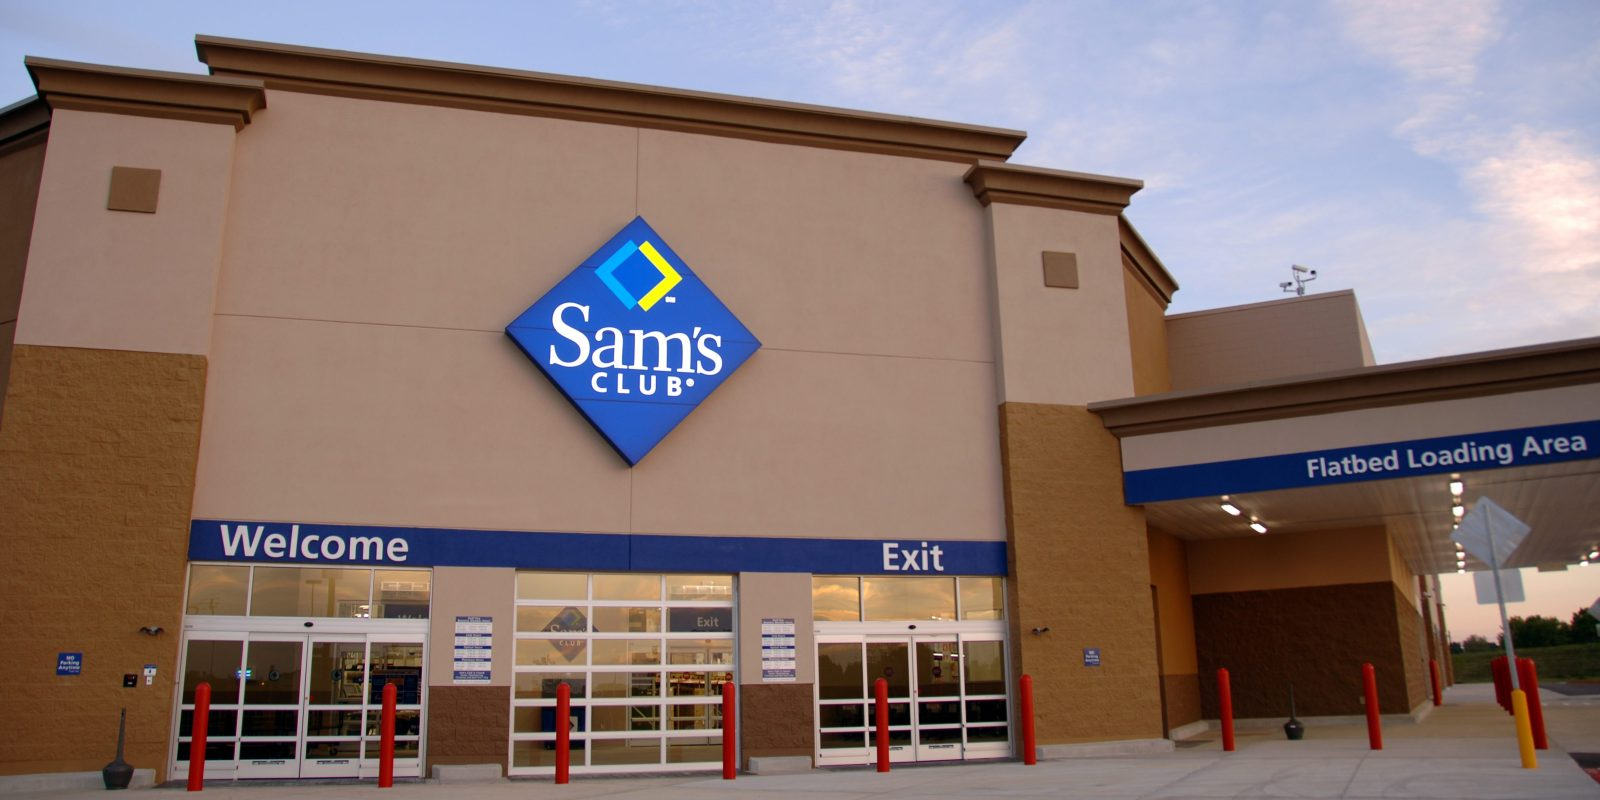 Sam's Club One Day Sales and Offers